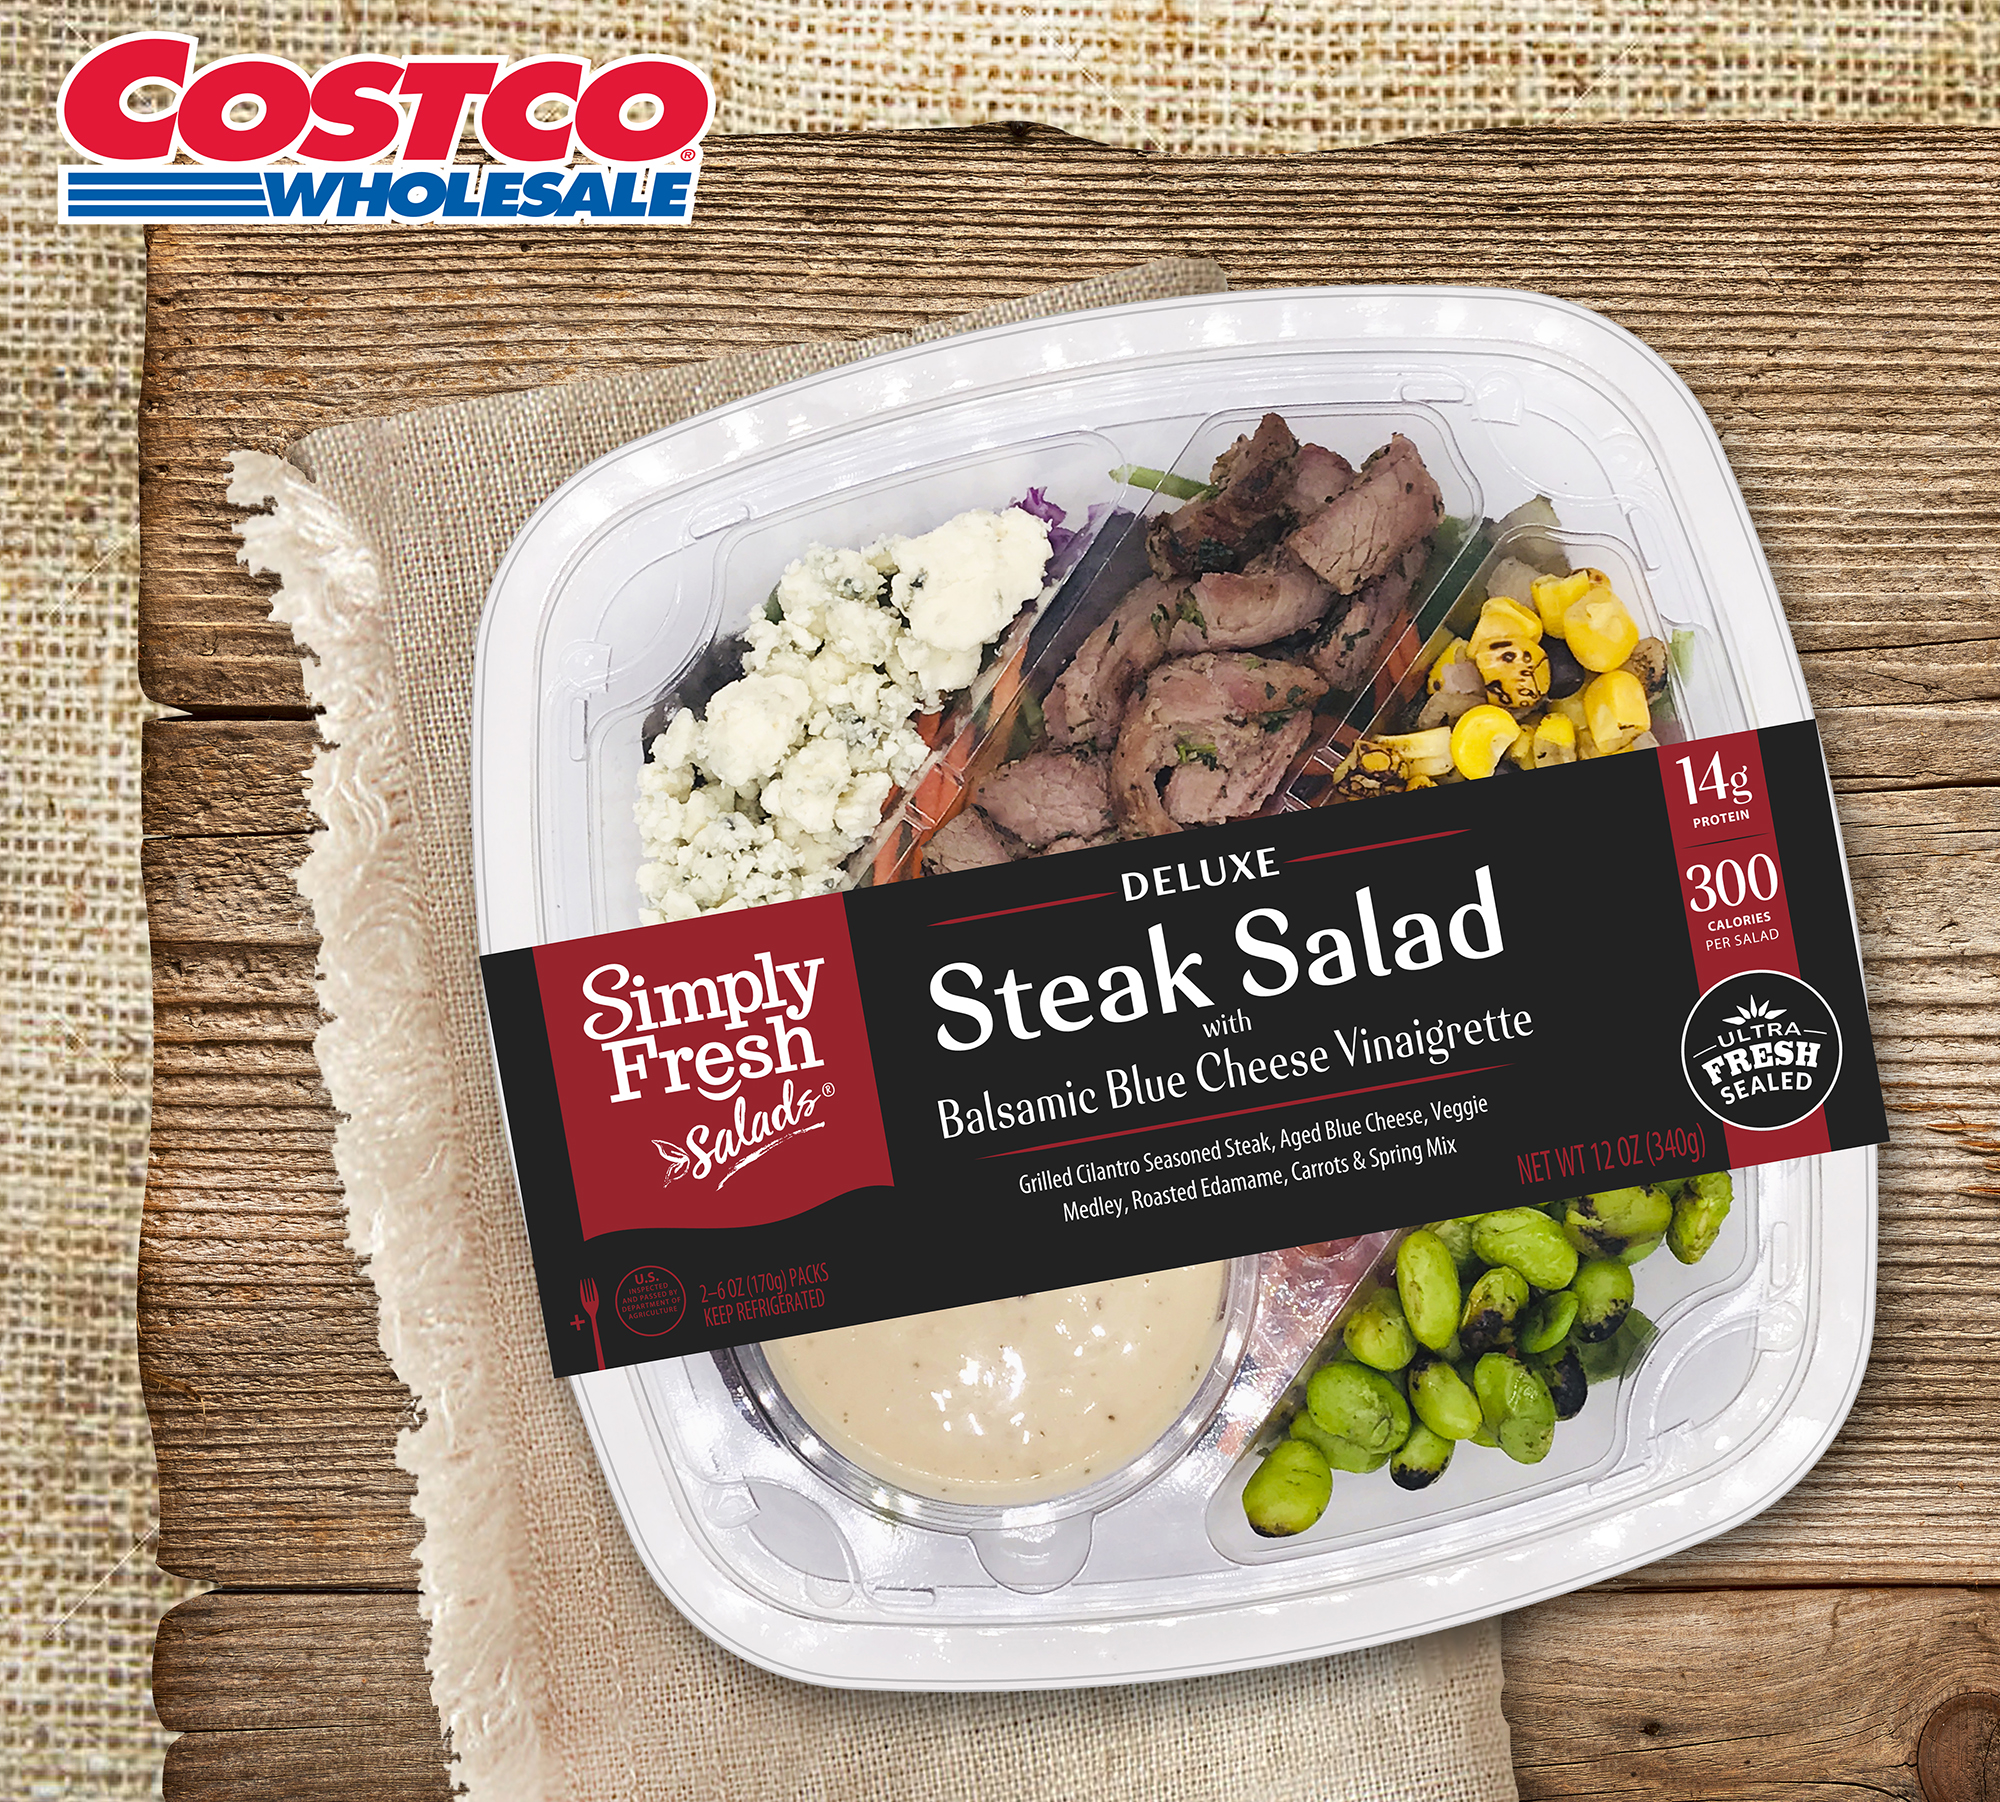 Five star steak salad